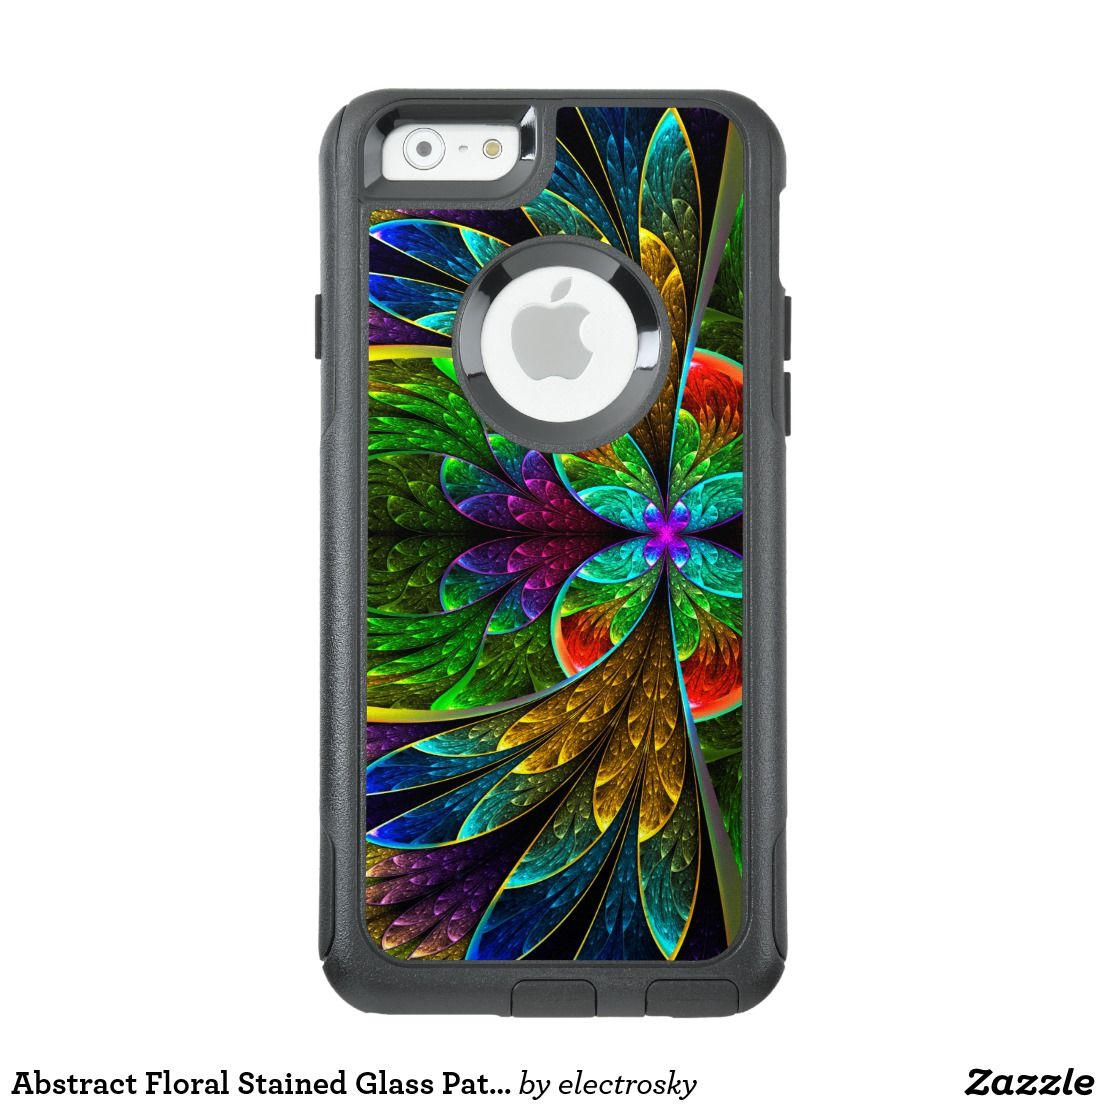 Abstract Floral Stained Glass Pattern OtterBox IPhone Case